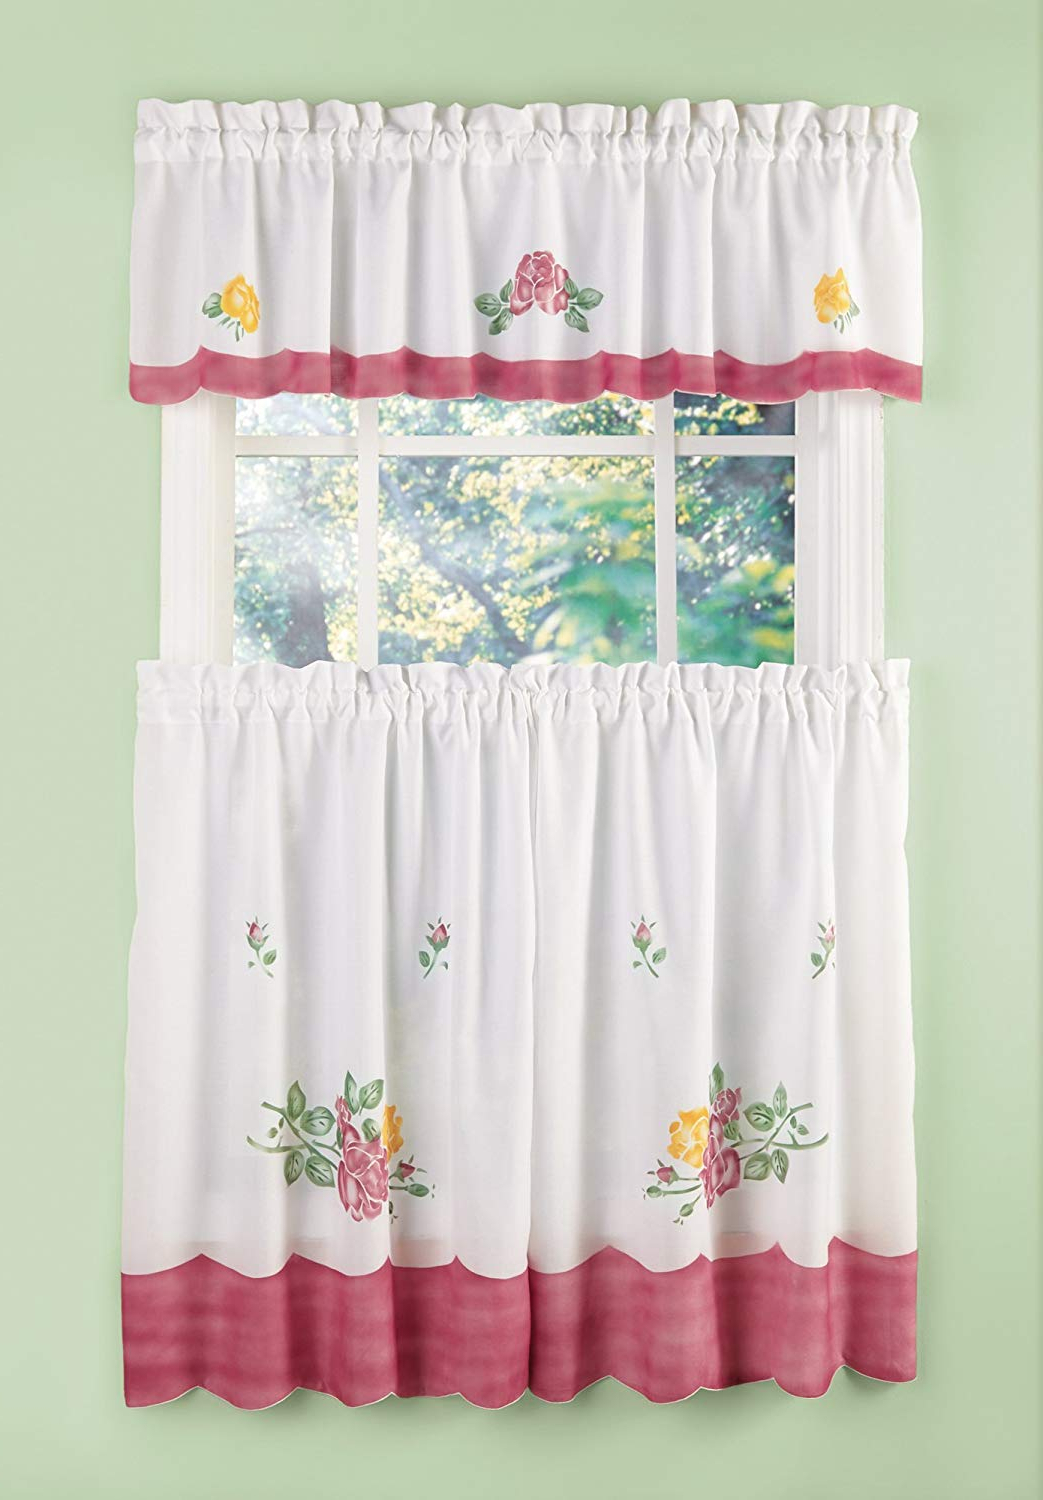 Amazon: Kitchen Curtains – Cafe Curtain Set, 3 Piece Intended For Most Recently Released Embroidered Floral 5 Piece Kitchen Curtain Sets (View 7 of 20)